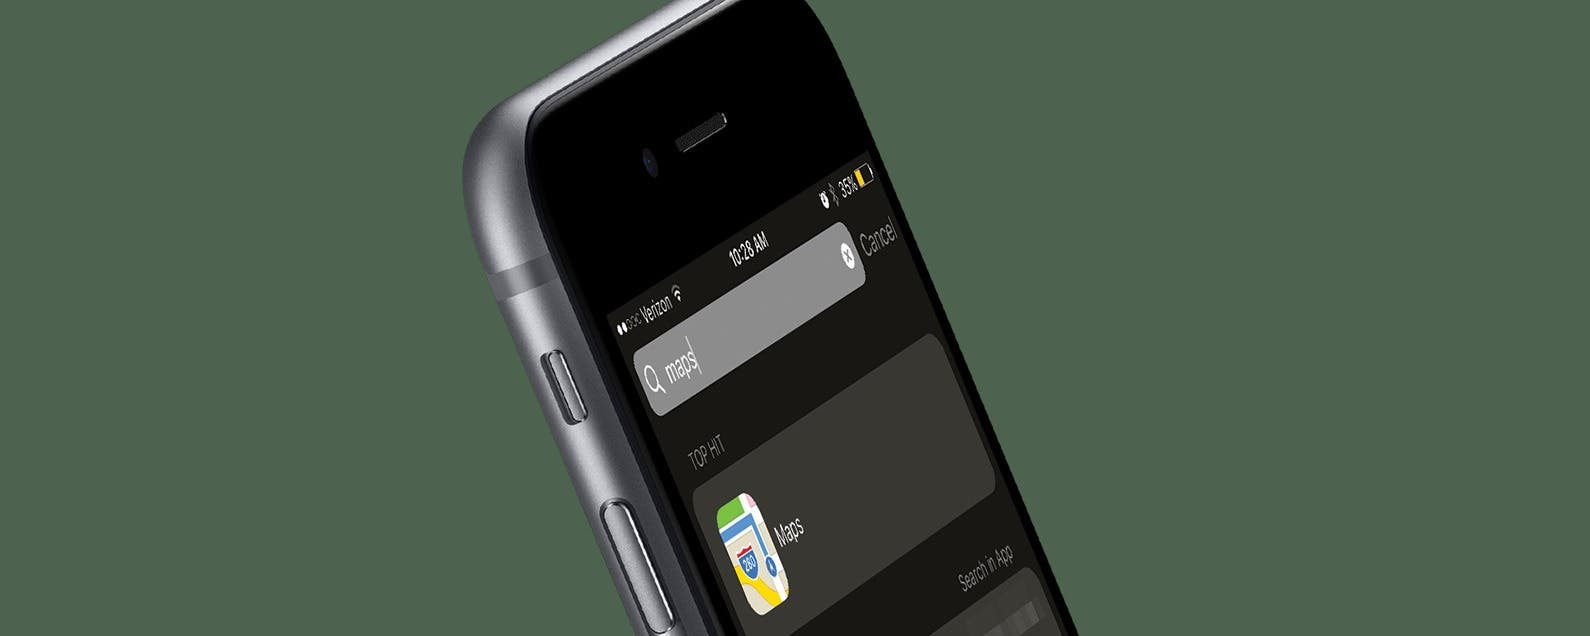 Apple Maps App Missing From Iphone How To Retrieve Deleted Apps